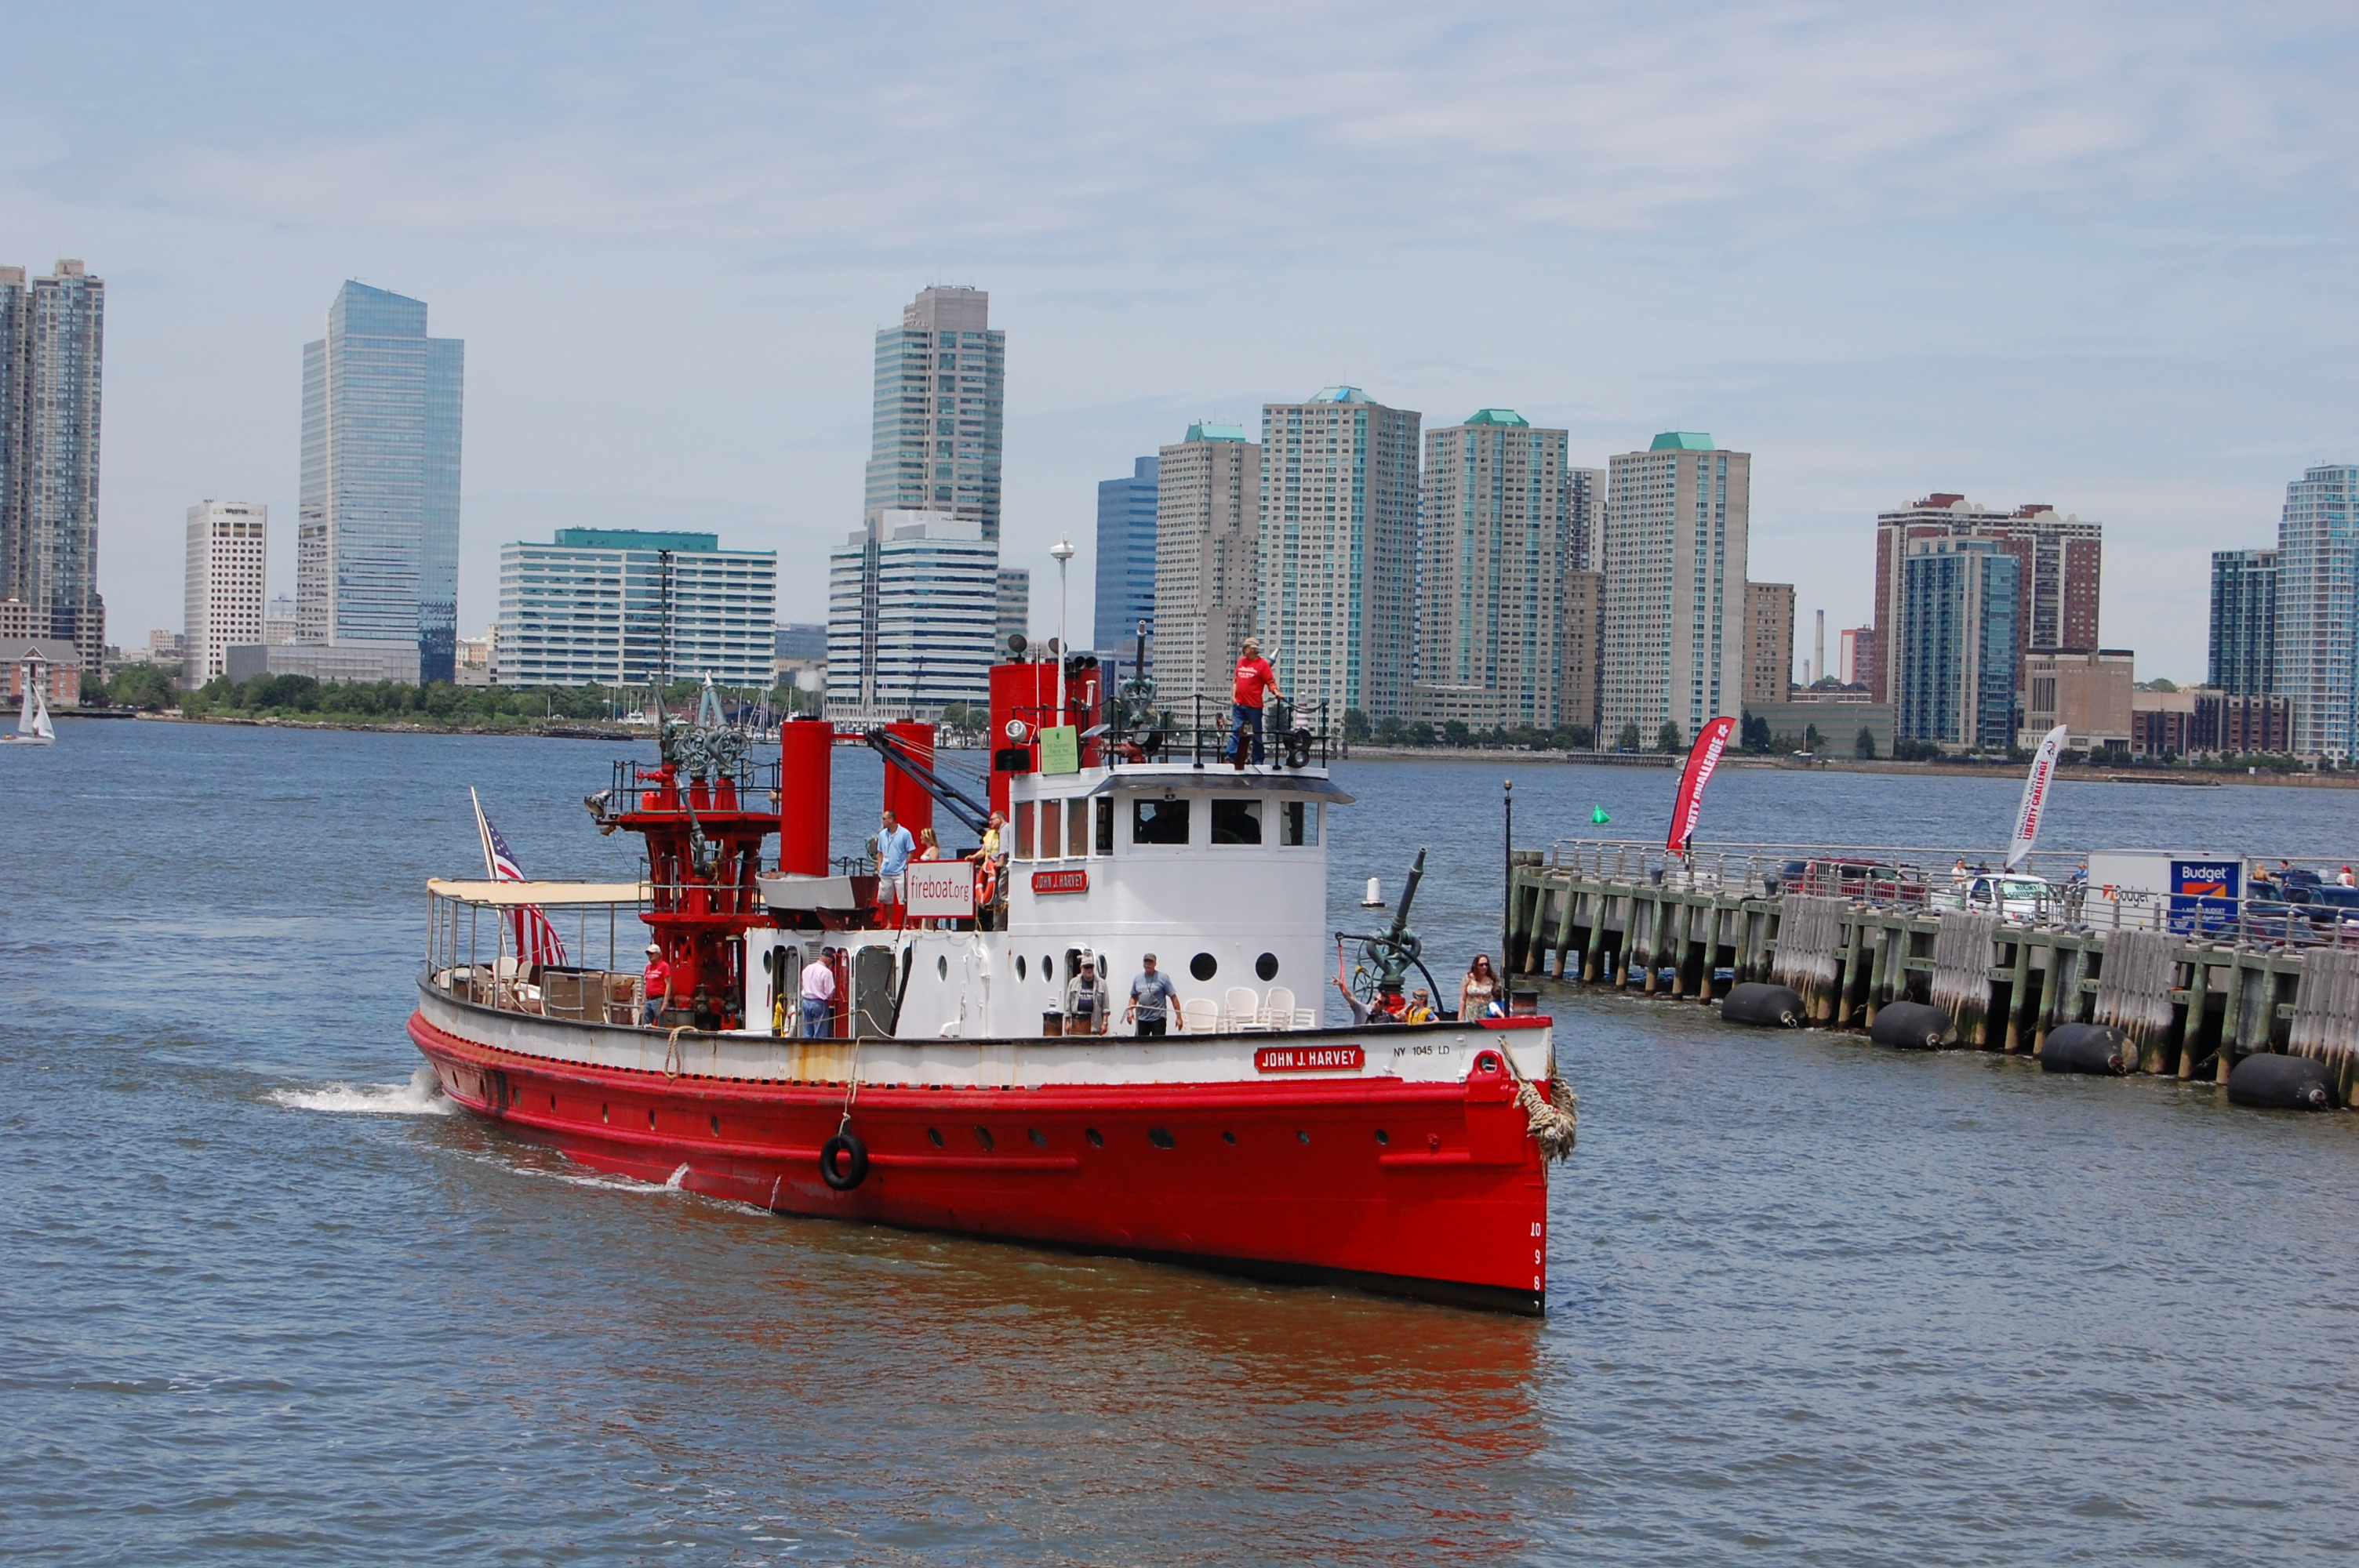 Fireboat John J Harvey Coming Closer to Dock, 2014, Photo by Paul Demonte